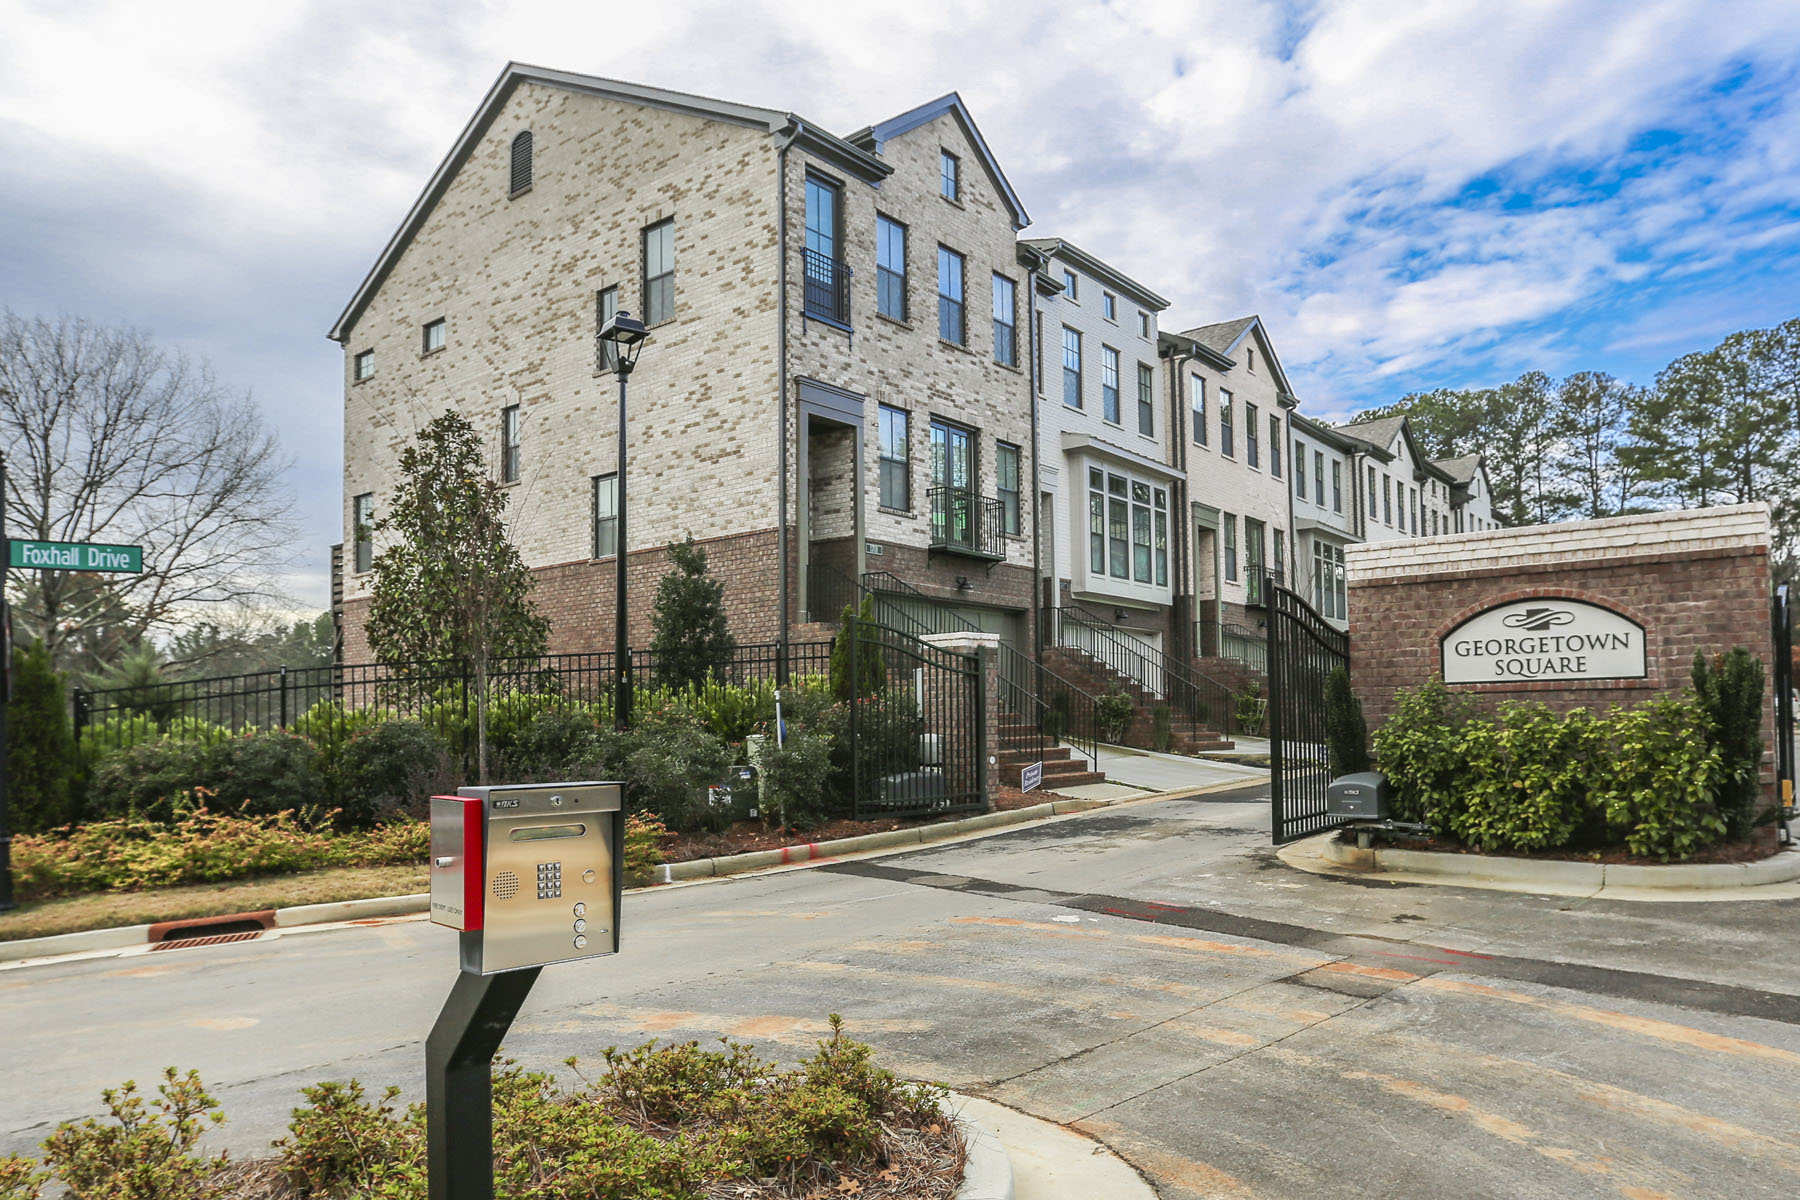 Townhouse for Sale at New Construction Townhome in the Heart of Dunwoody 4330 Georgetown Square Unit 15 Dunwoody, Georgia 30338 United States